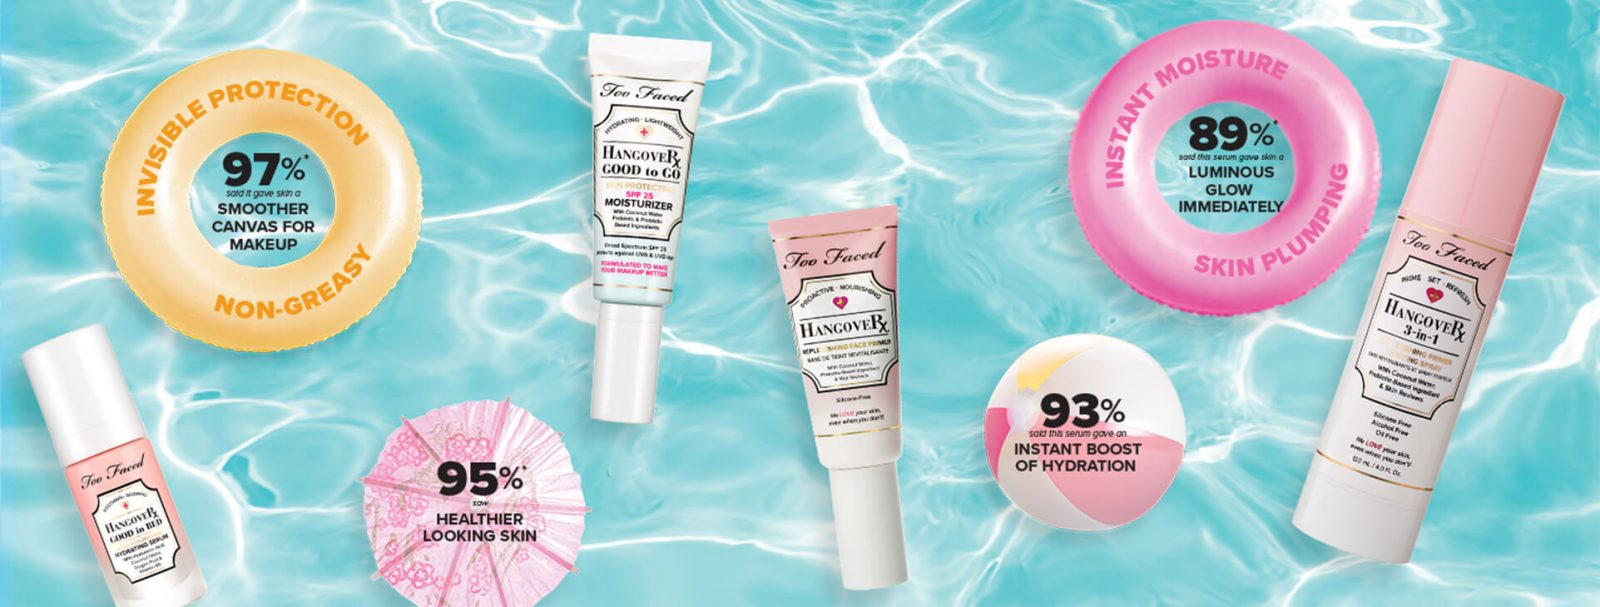 too-faced-hangover-skincare-collection